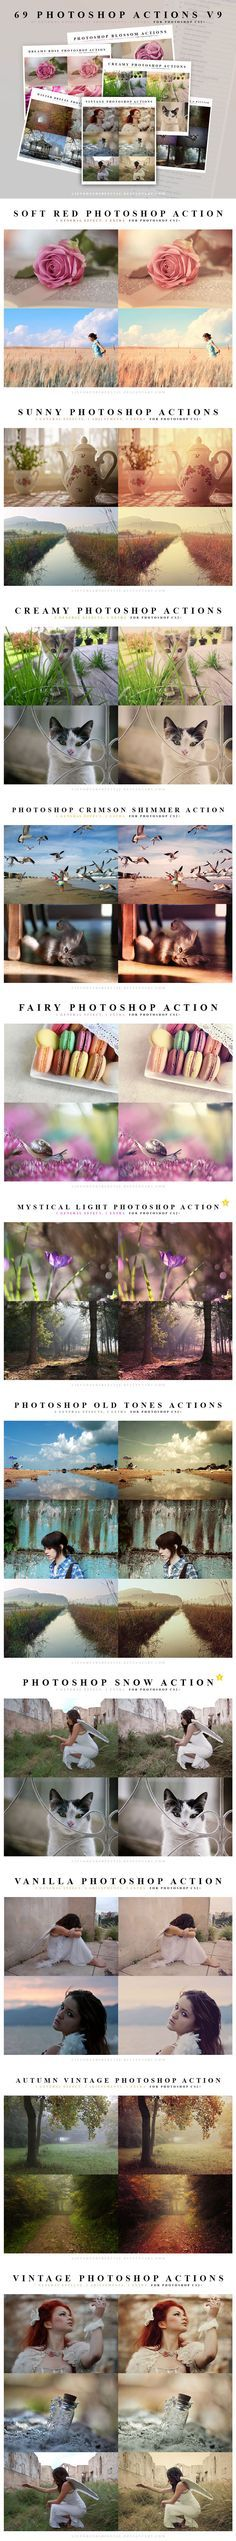 Best free Photoshop Actions for photographers.